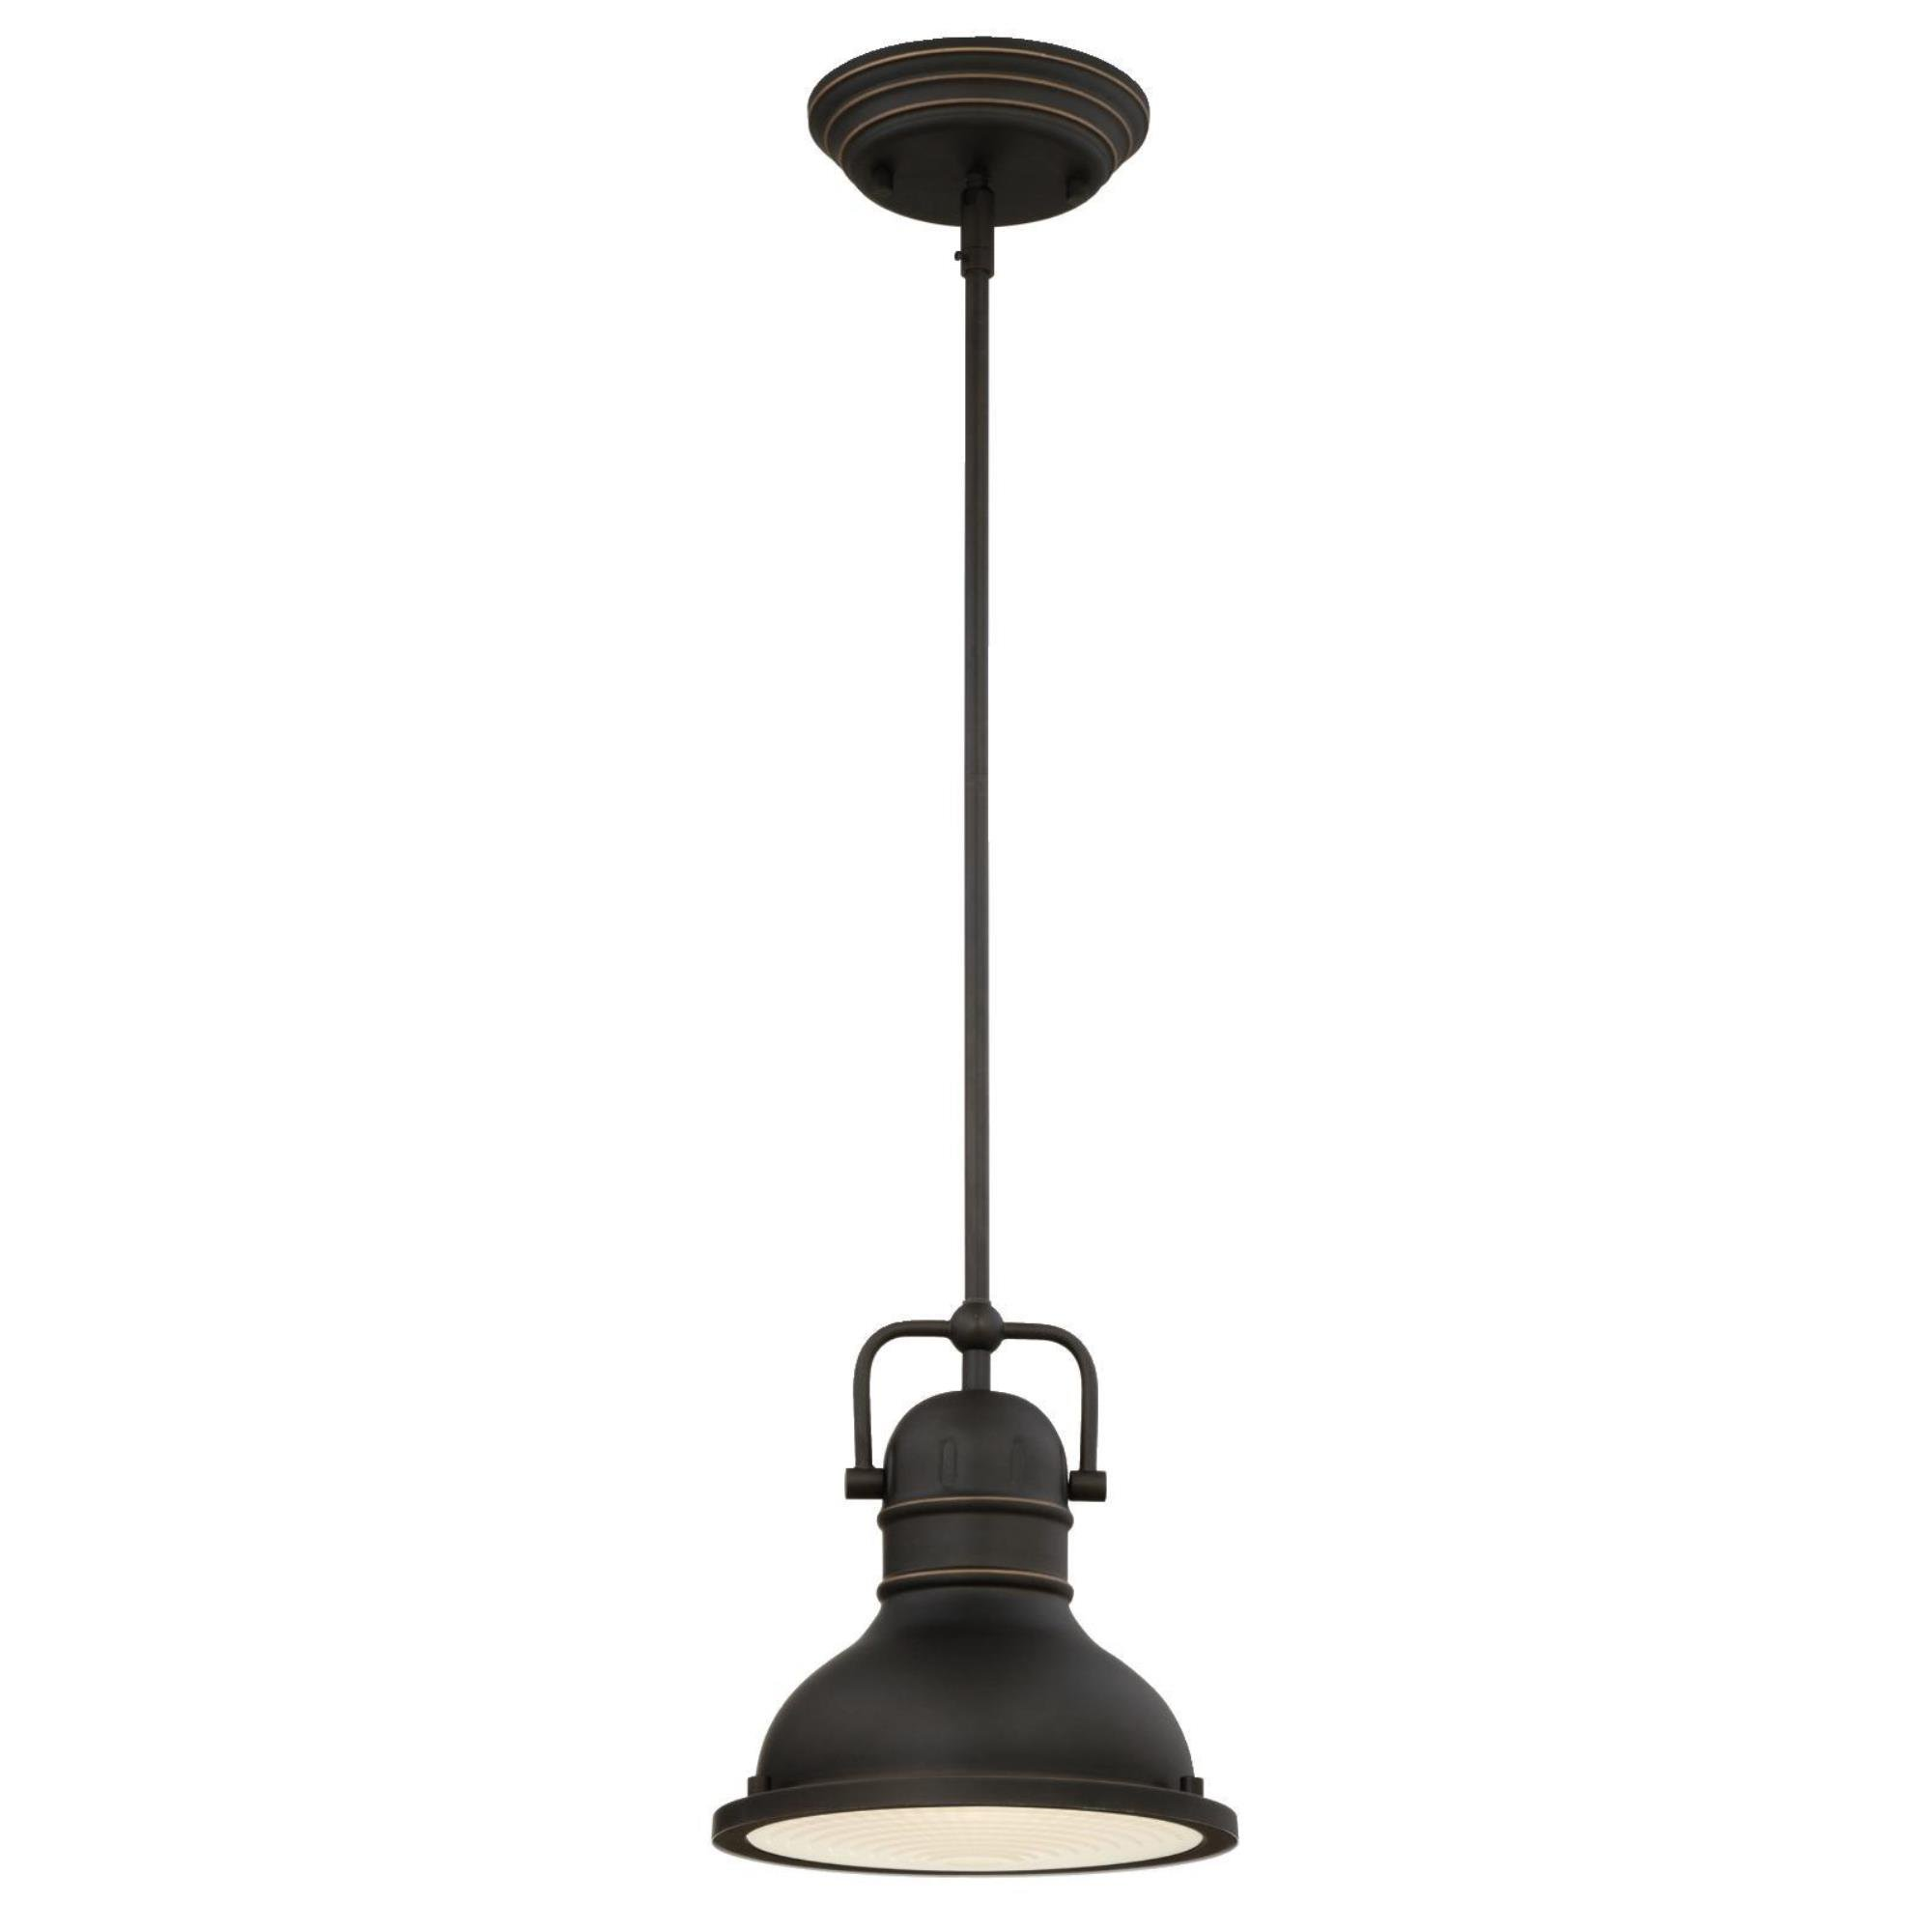 Westinghouse Lighting 63082A Boswell One-Light LED Indoor Mini Pendant, Oil Rubbed Bronze Finish with Highlights and Frosted Prismatic Lens